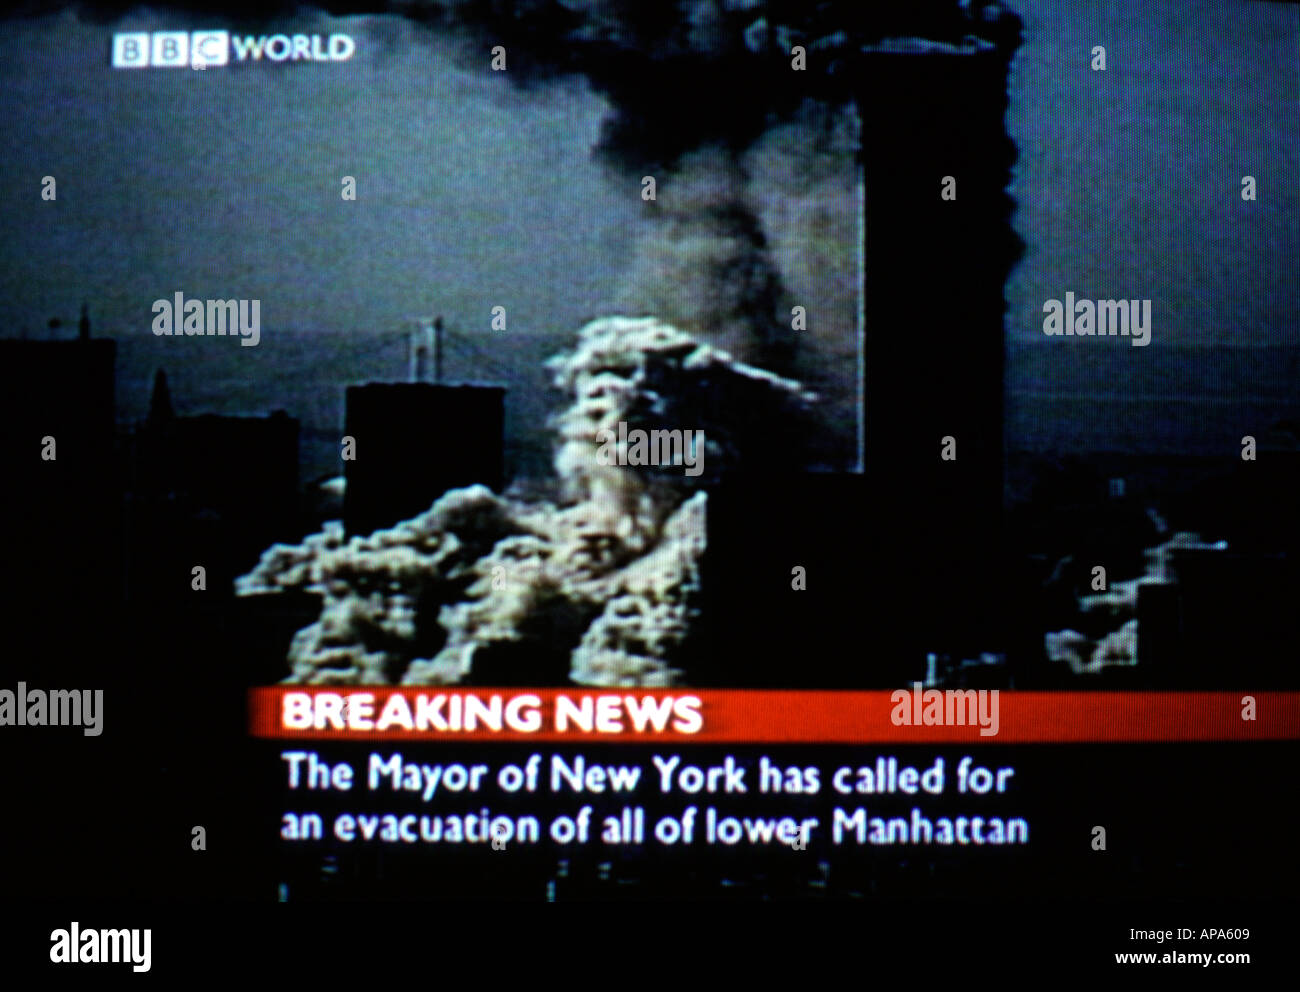 A screen shot of BBC's live coverage of events unfolding in New York during 9/11 Stock Photo